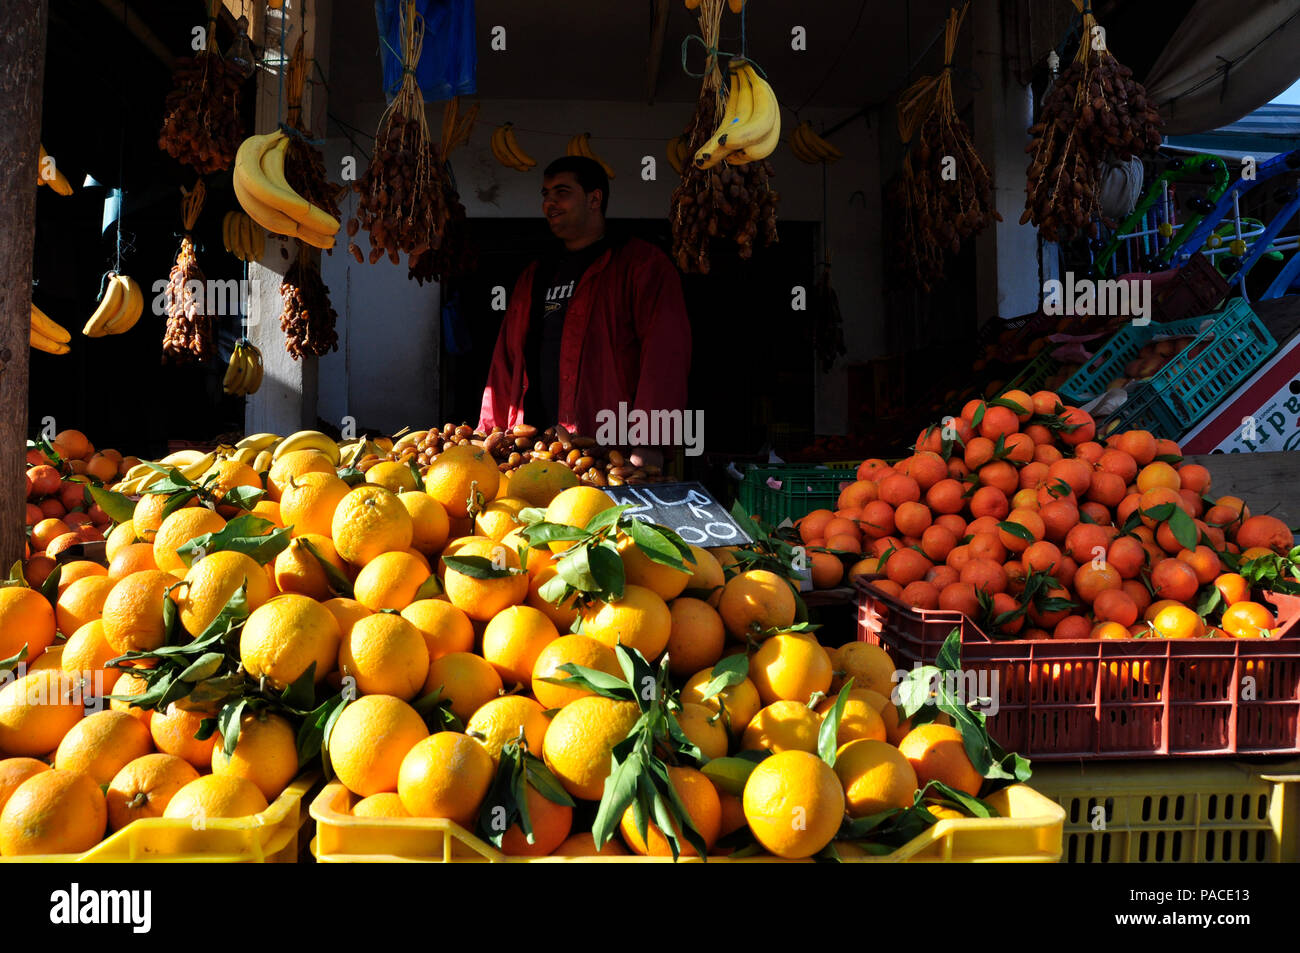 Market in the north of Tunesia, where farmers are producing many types of fruits and vegetables and the world famous olives. - Stock Image